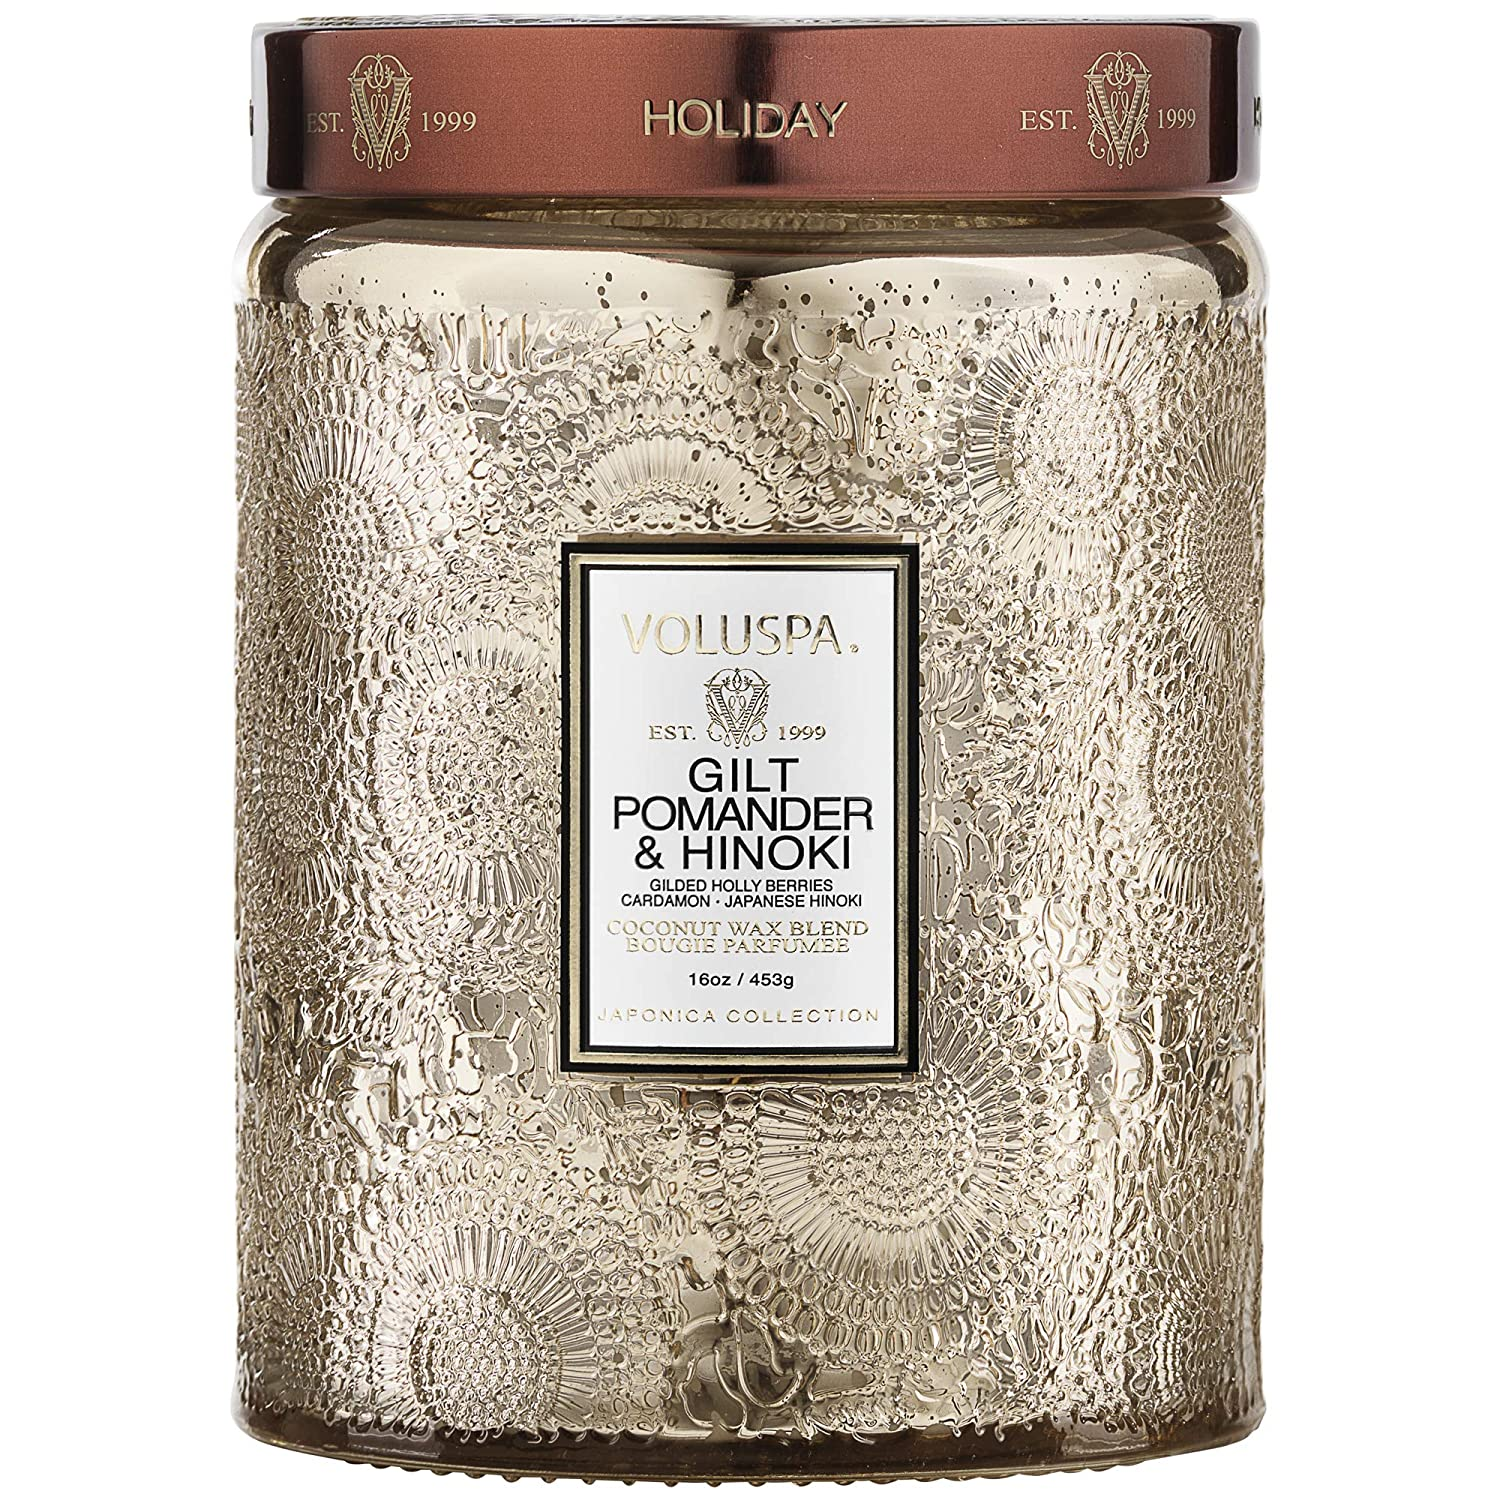 Voluspa Gilt Pomander & Hinoki Holiday Candle